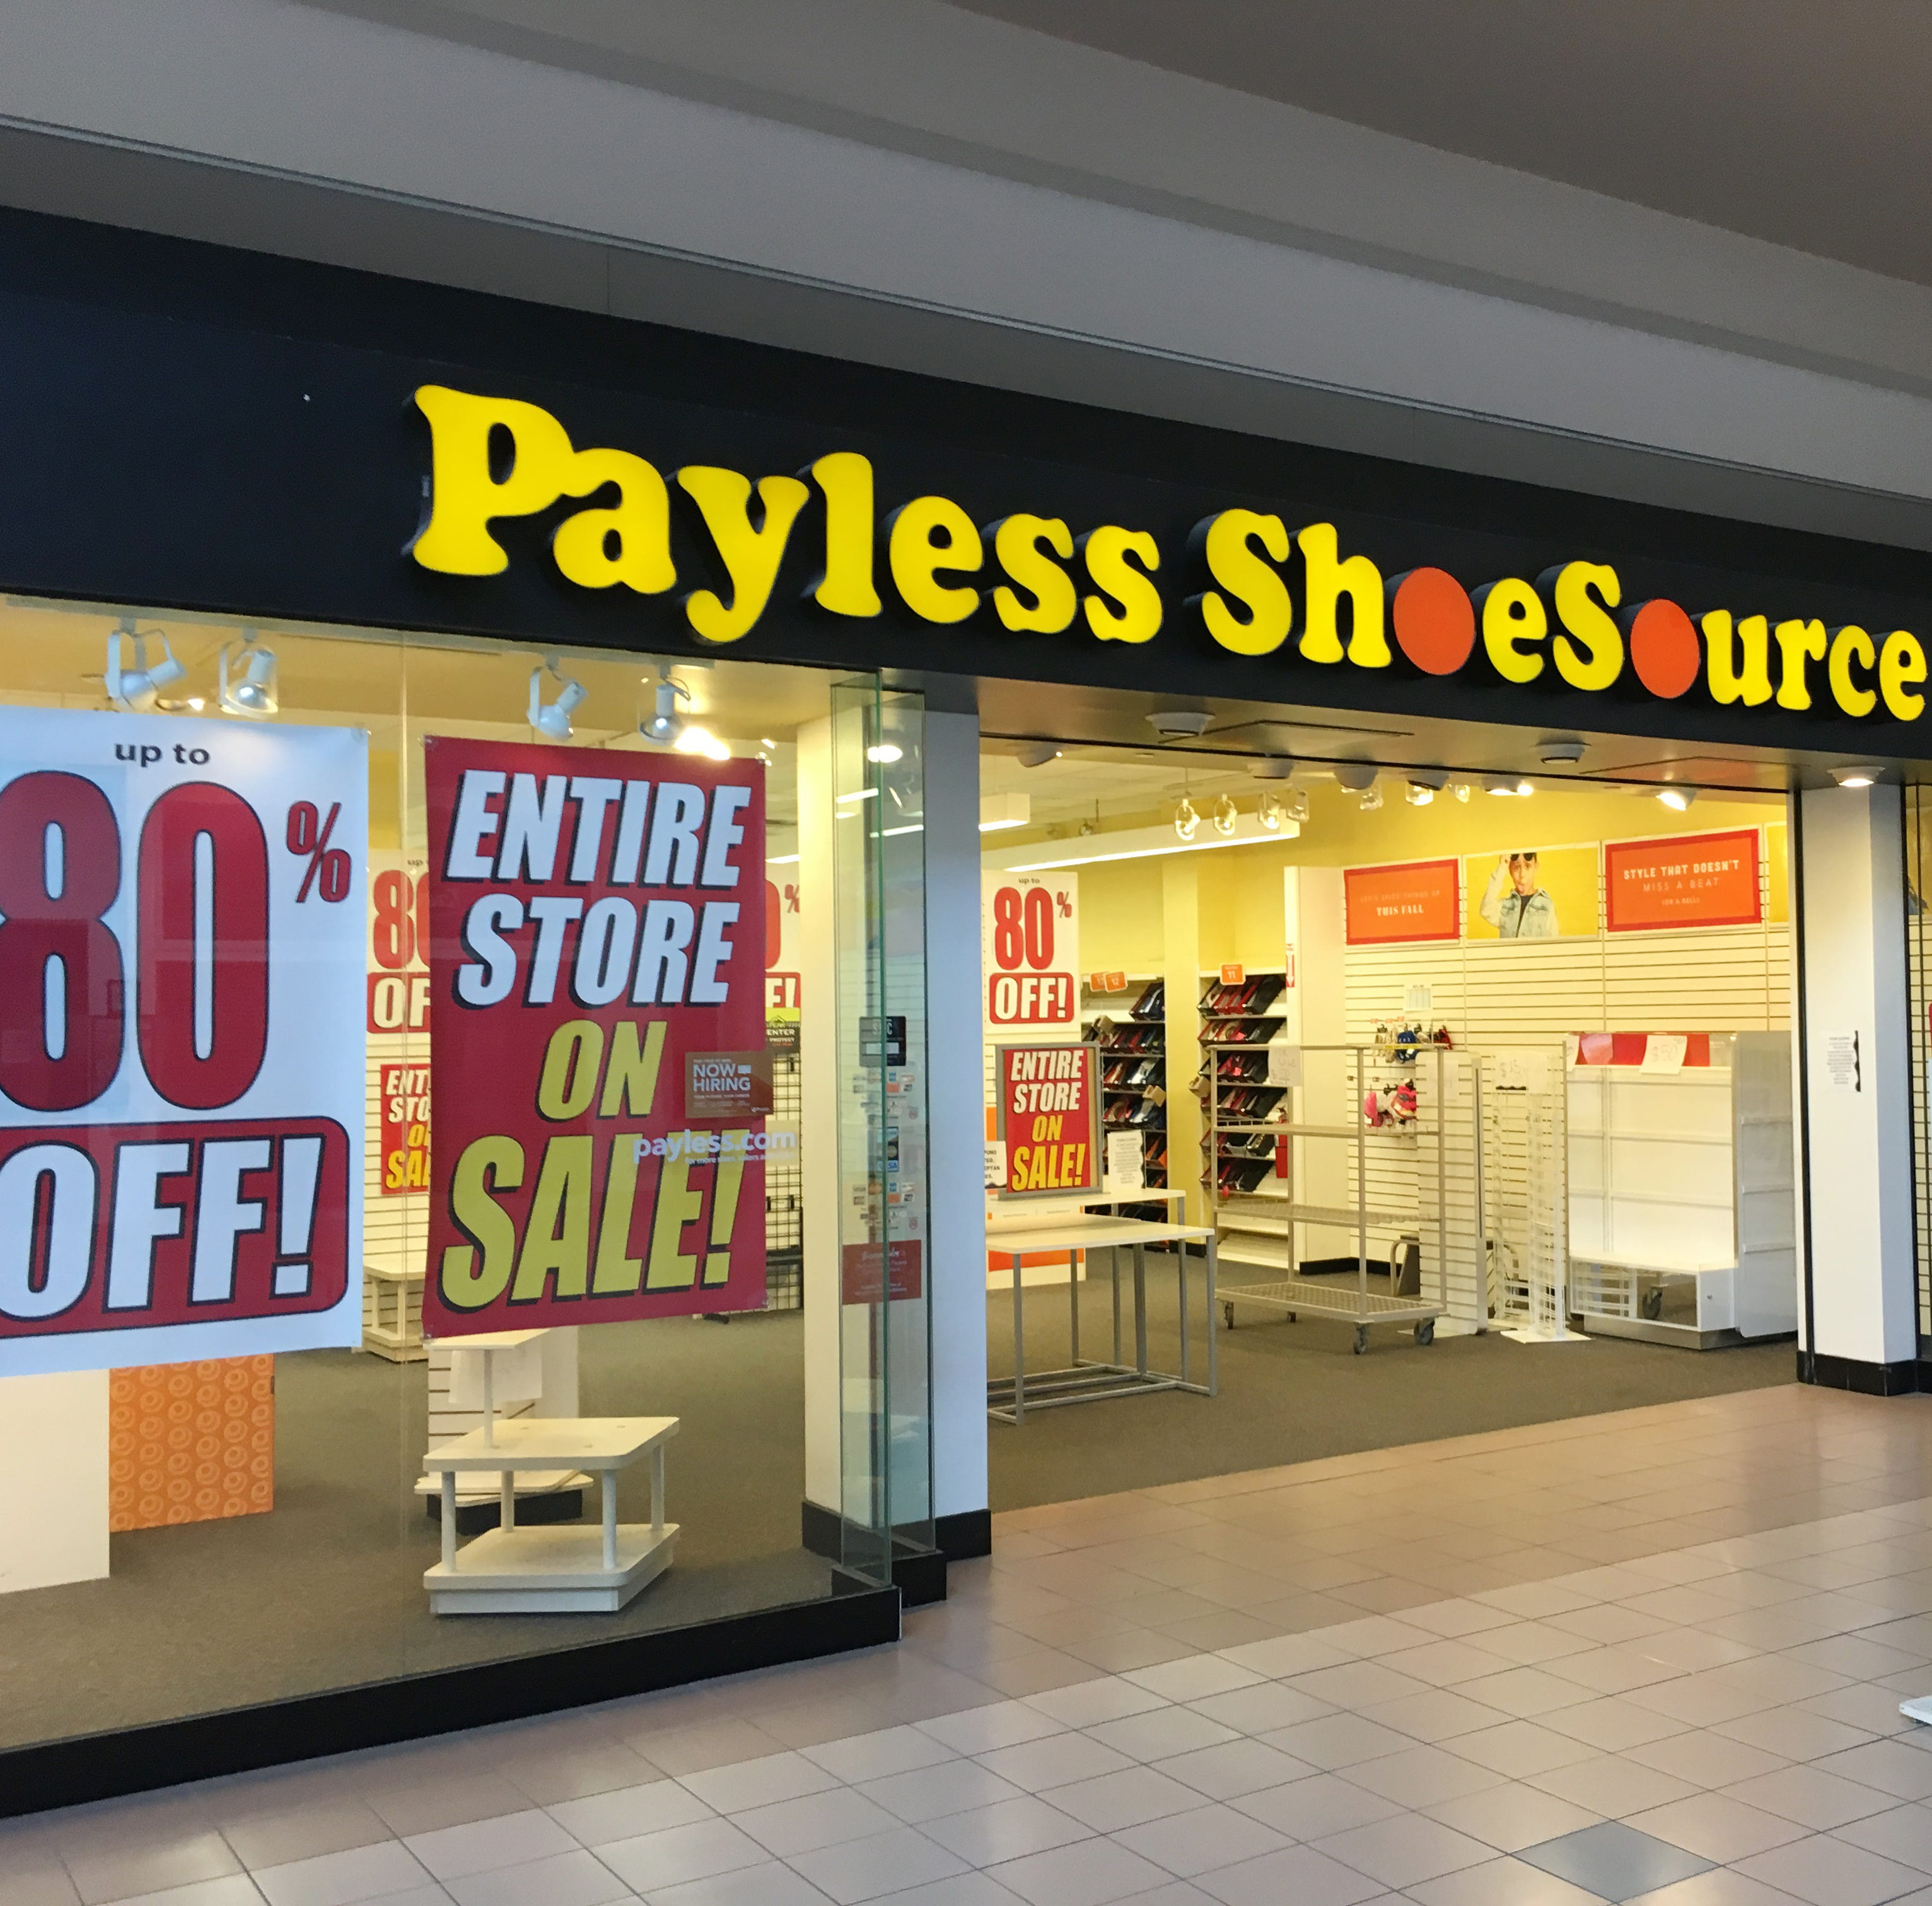 Payless ShoeSource closing all 2,100 US stores, starting liquidation sales Sunday